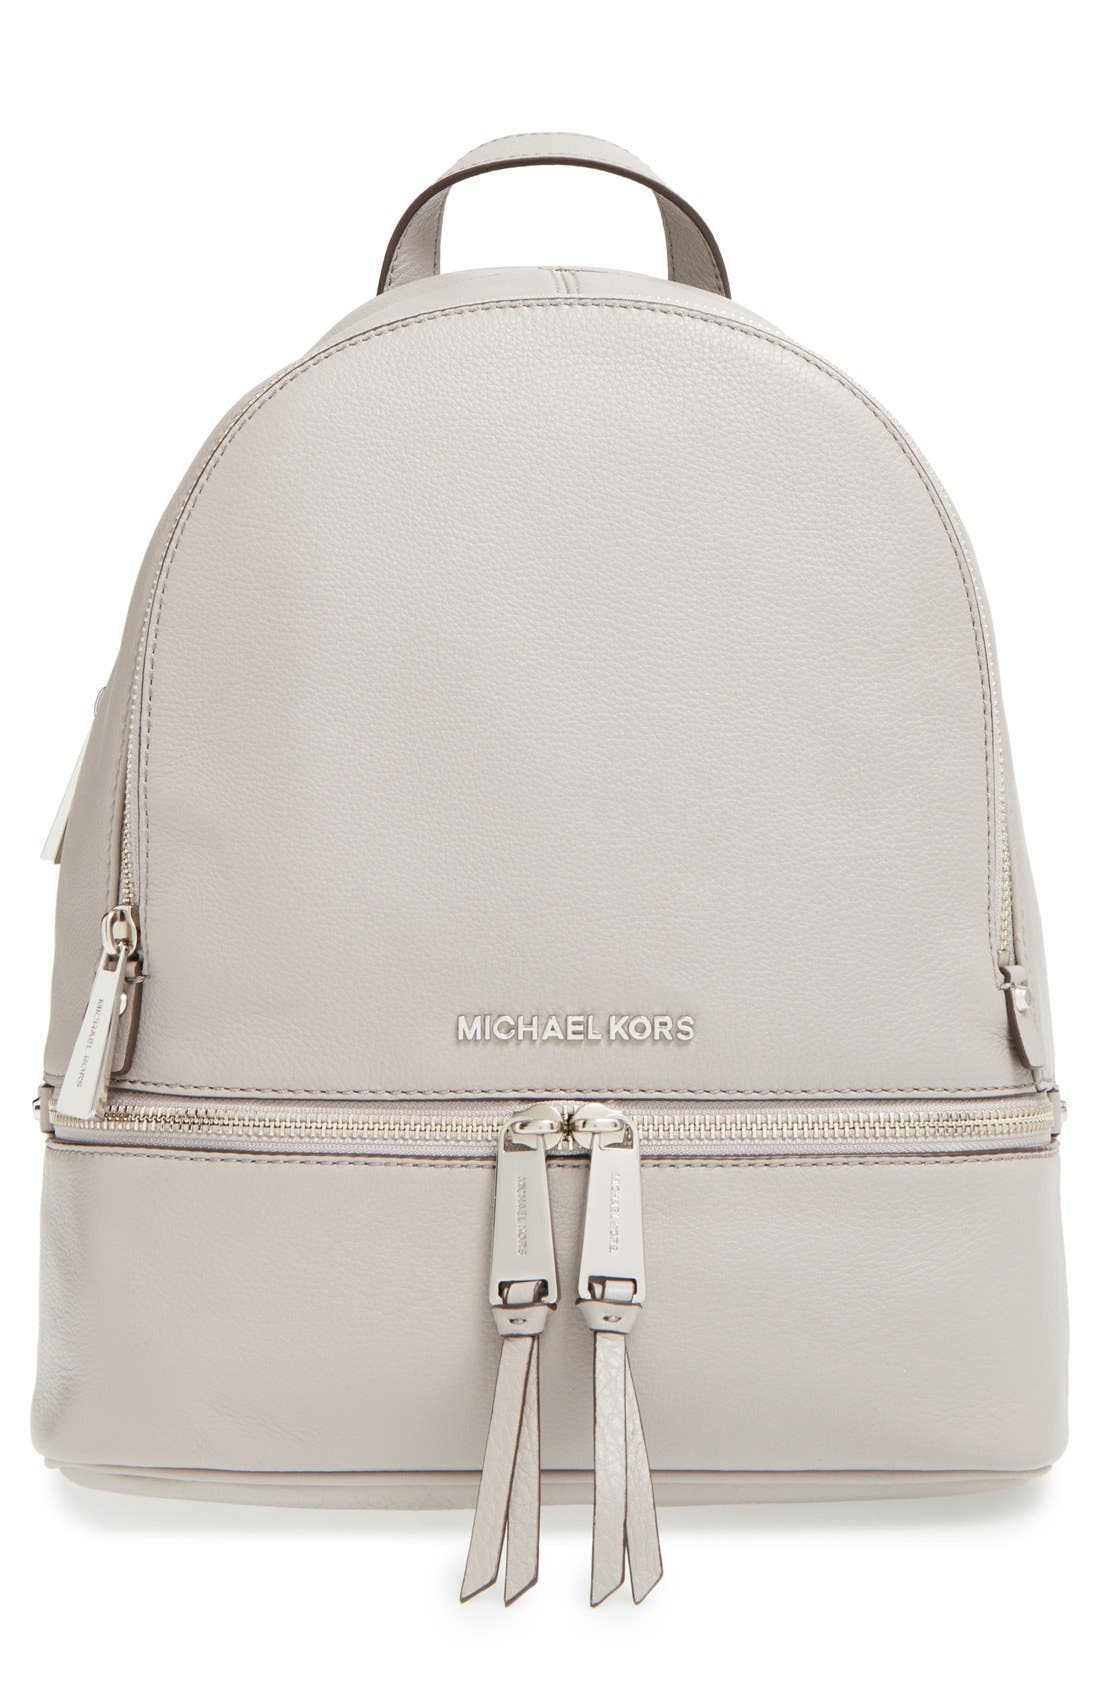 'Small Rhea Zip' Leather Backpack,                             Main thumbnail 1, color,                             Pearl Grey/ Silver